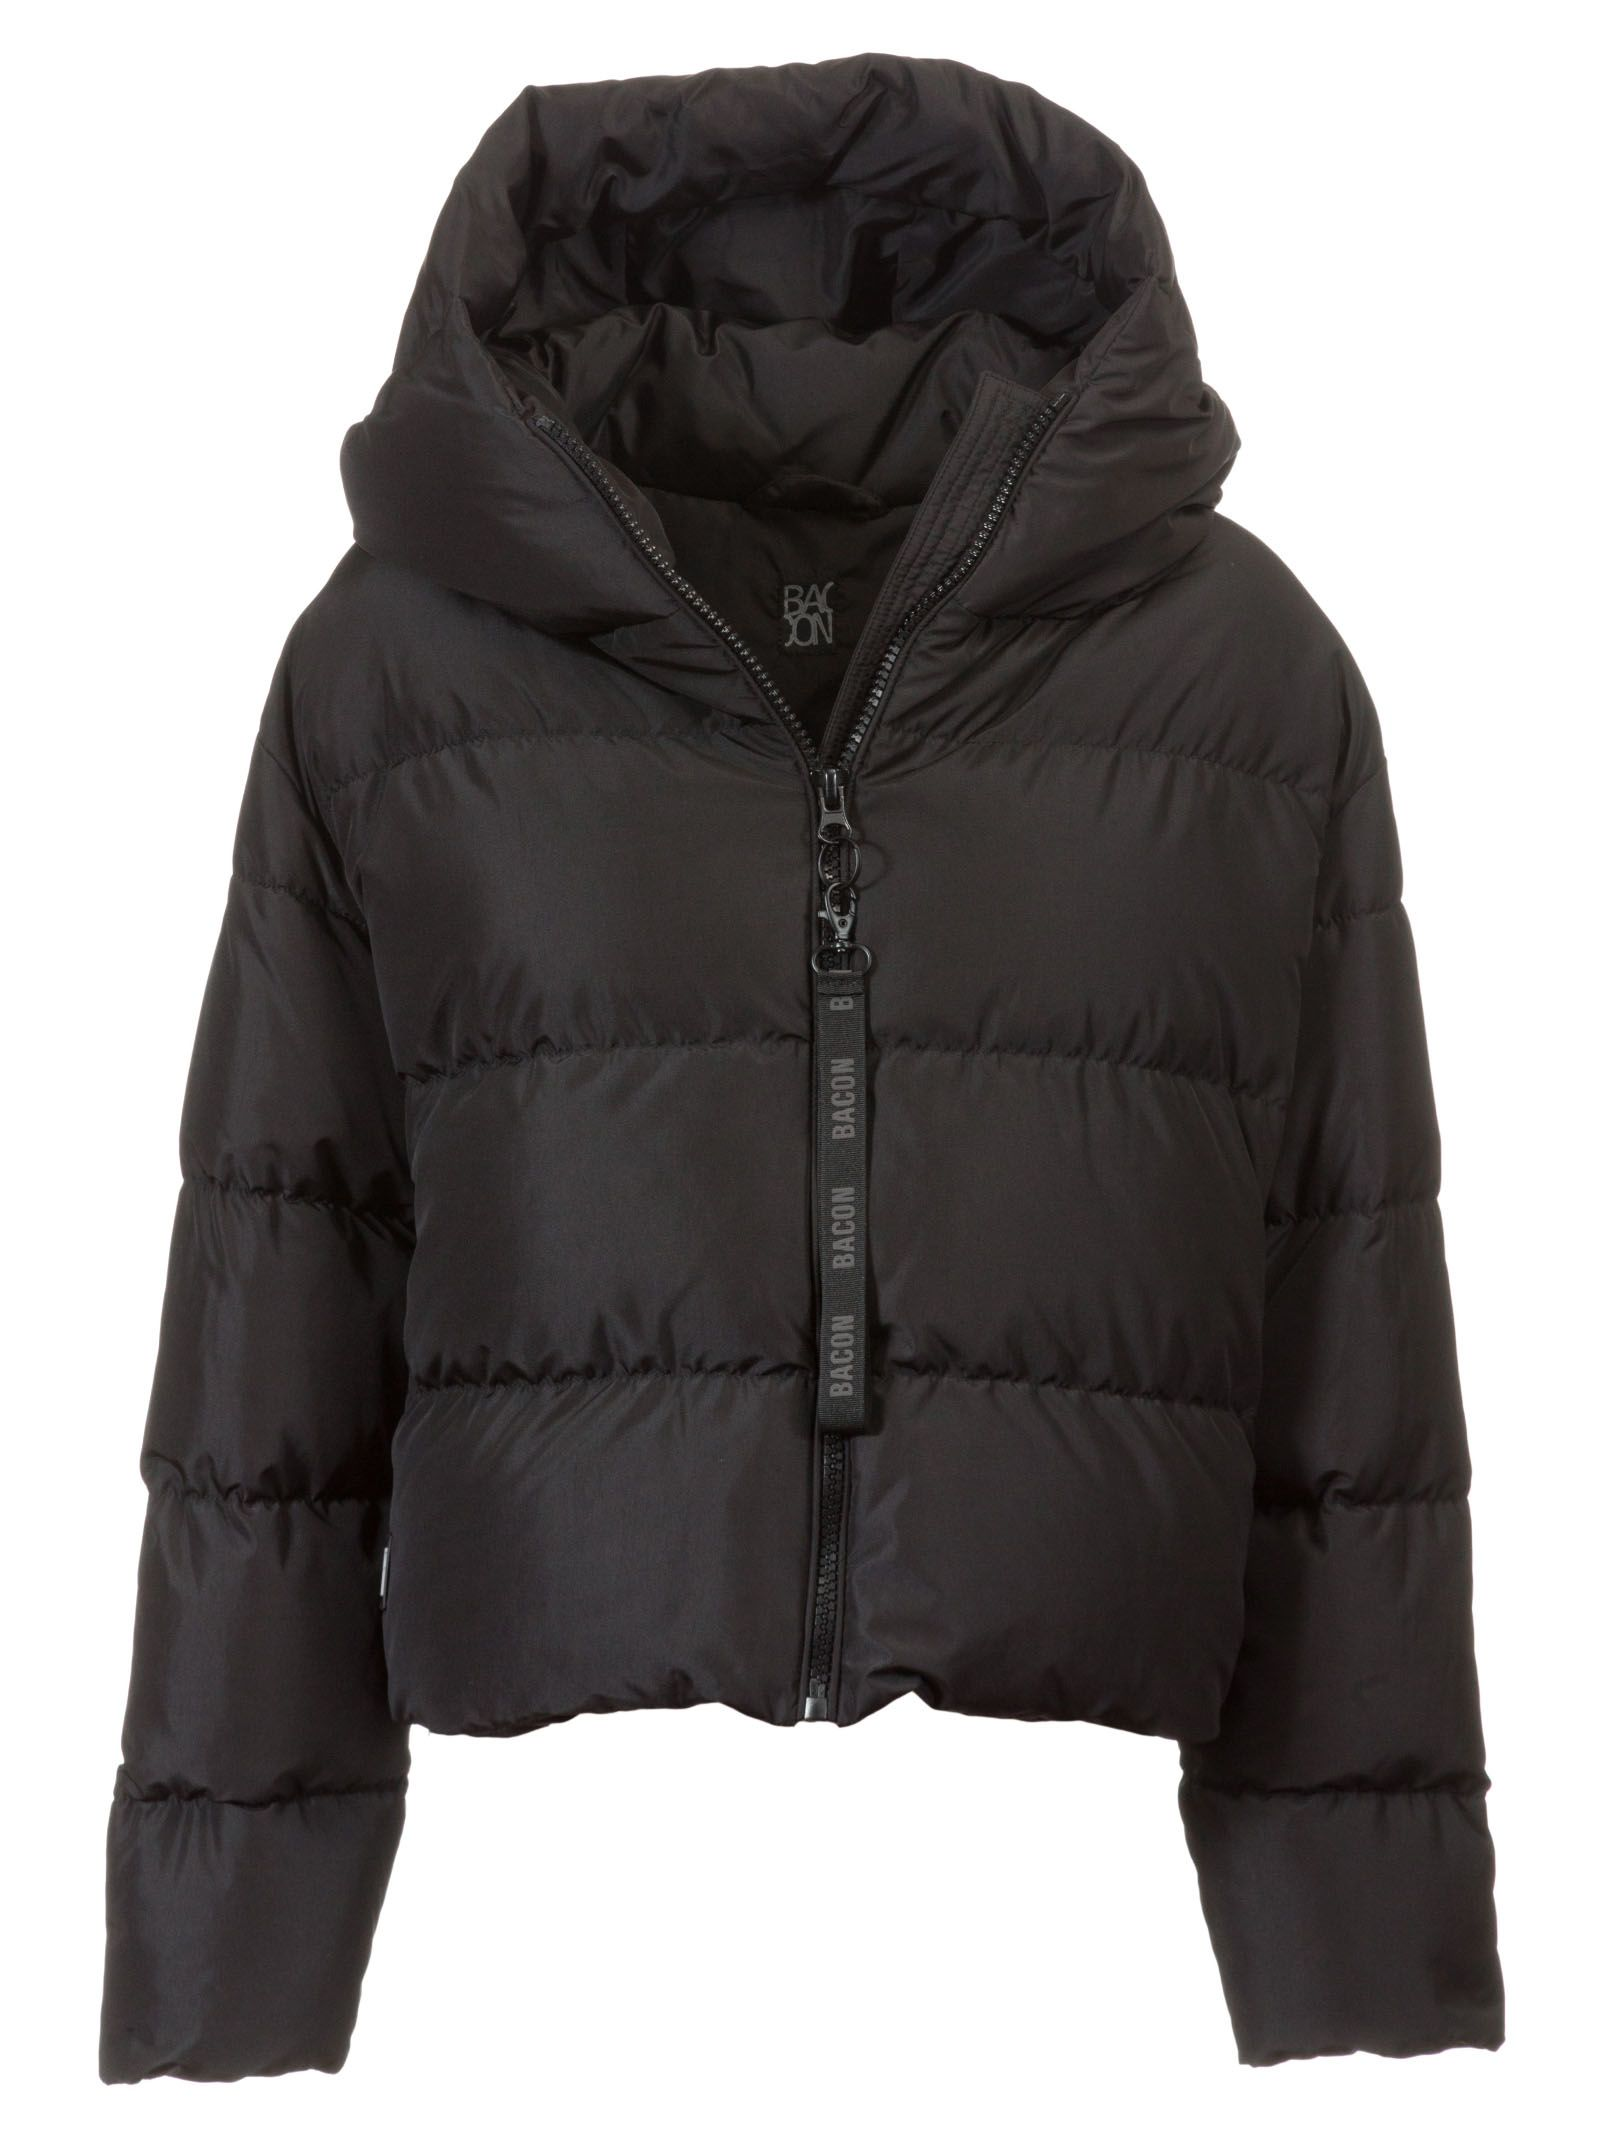 BACON CLOTHING Bacon Cloud Hood Padded Jacket in Black